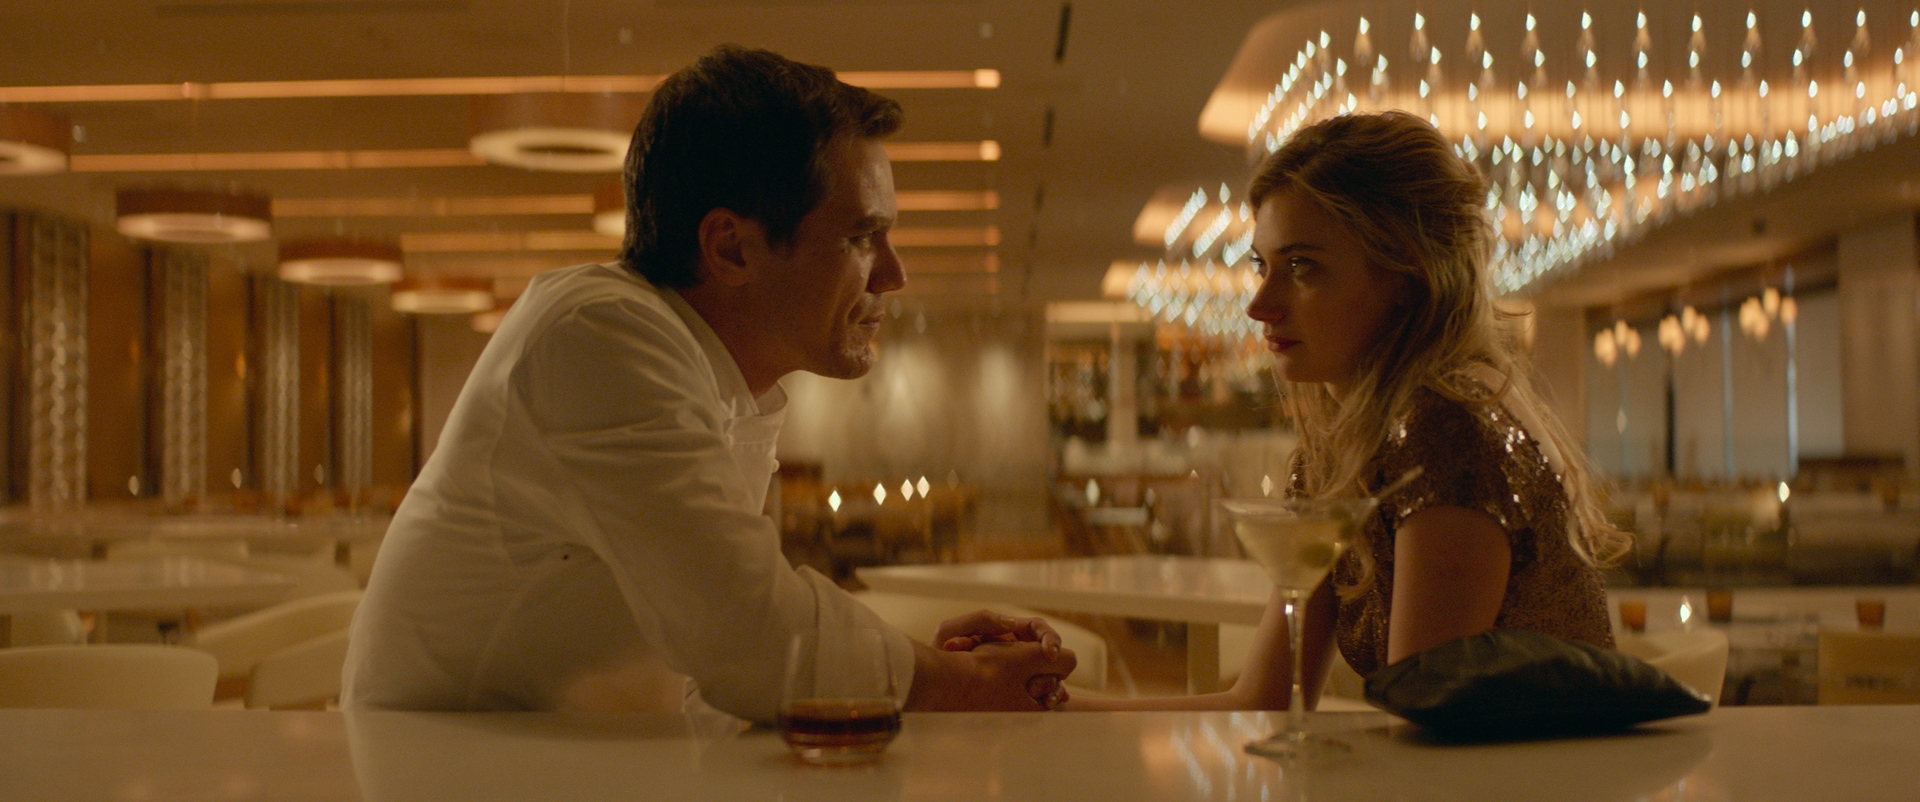 CAPTION:  Michael Shannon and Imogen Poots in  Frank & Lola .    PHOTO CREDIT:  Eric Koretz.   THIS IMAGE IS APPROVED FOR FAIR USE AND PUBLICITY PURPOSES.   (For full-res JPEG,  CLICK HERE .)